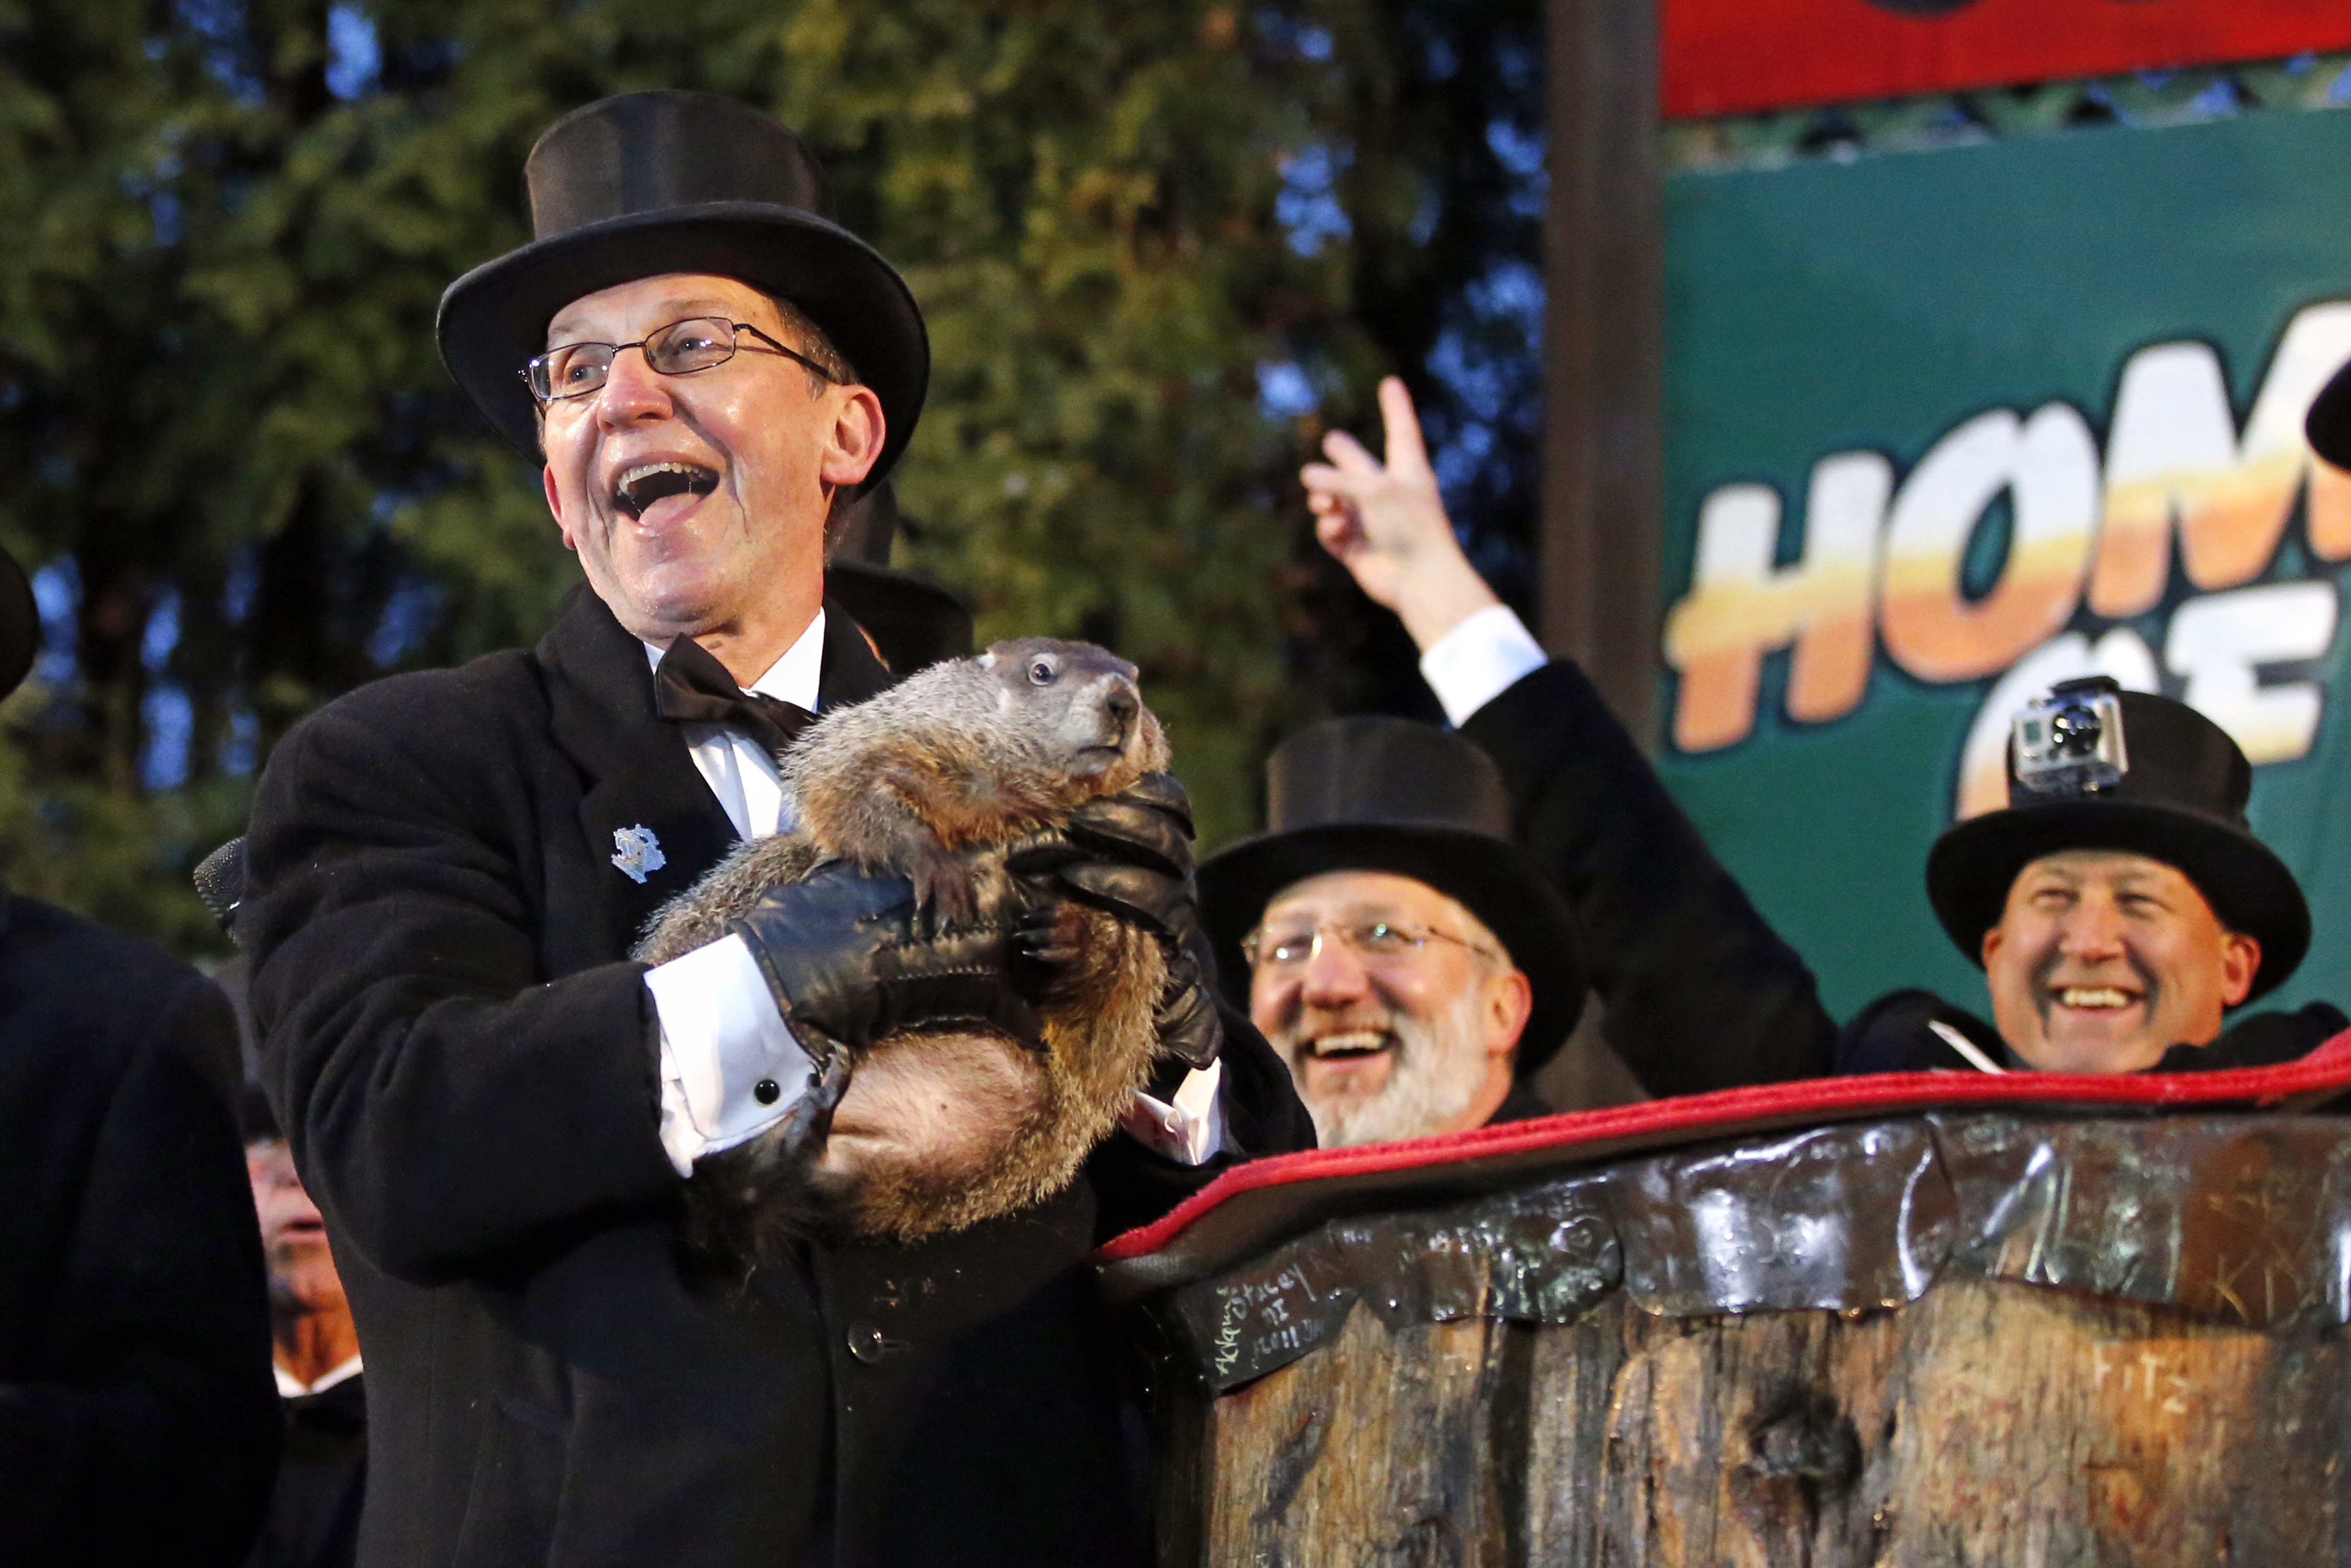 7 facts about Groundhog Day